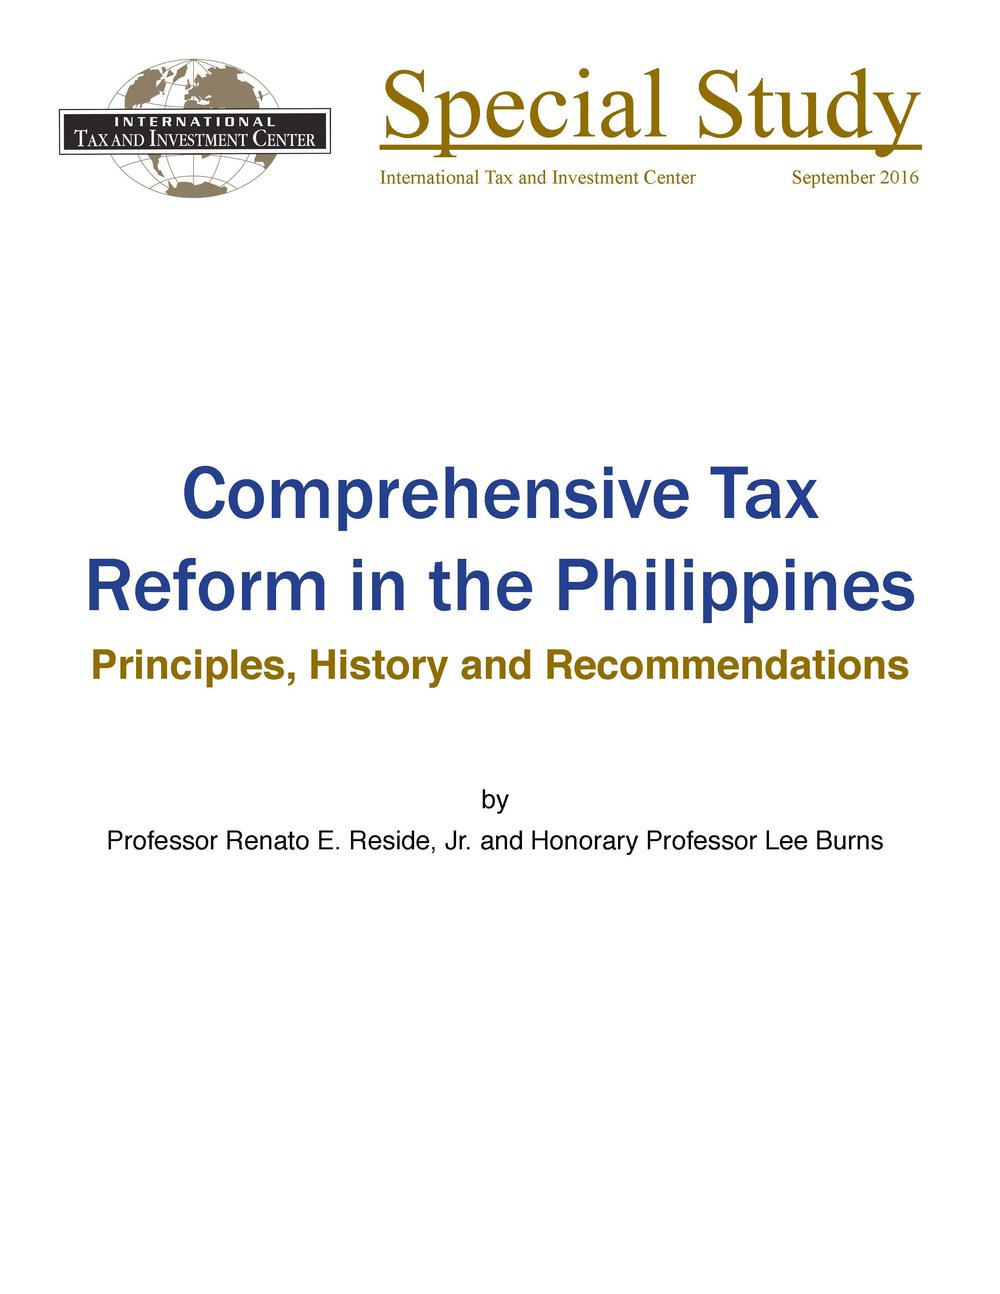 Pages from Comprehensive Tax Reform in the Philippines.jpg